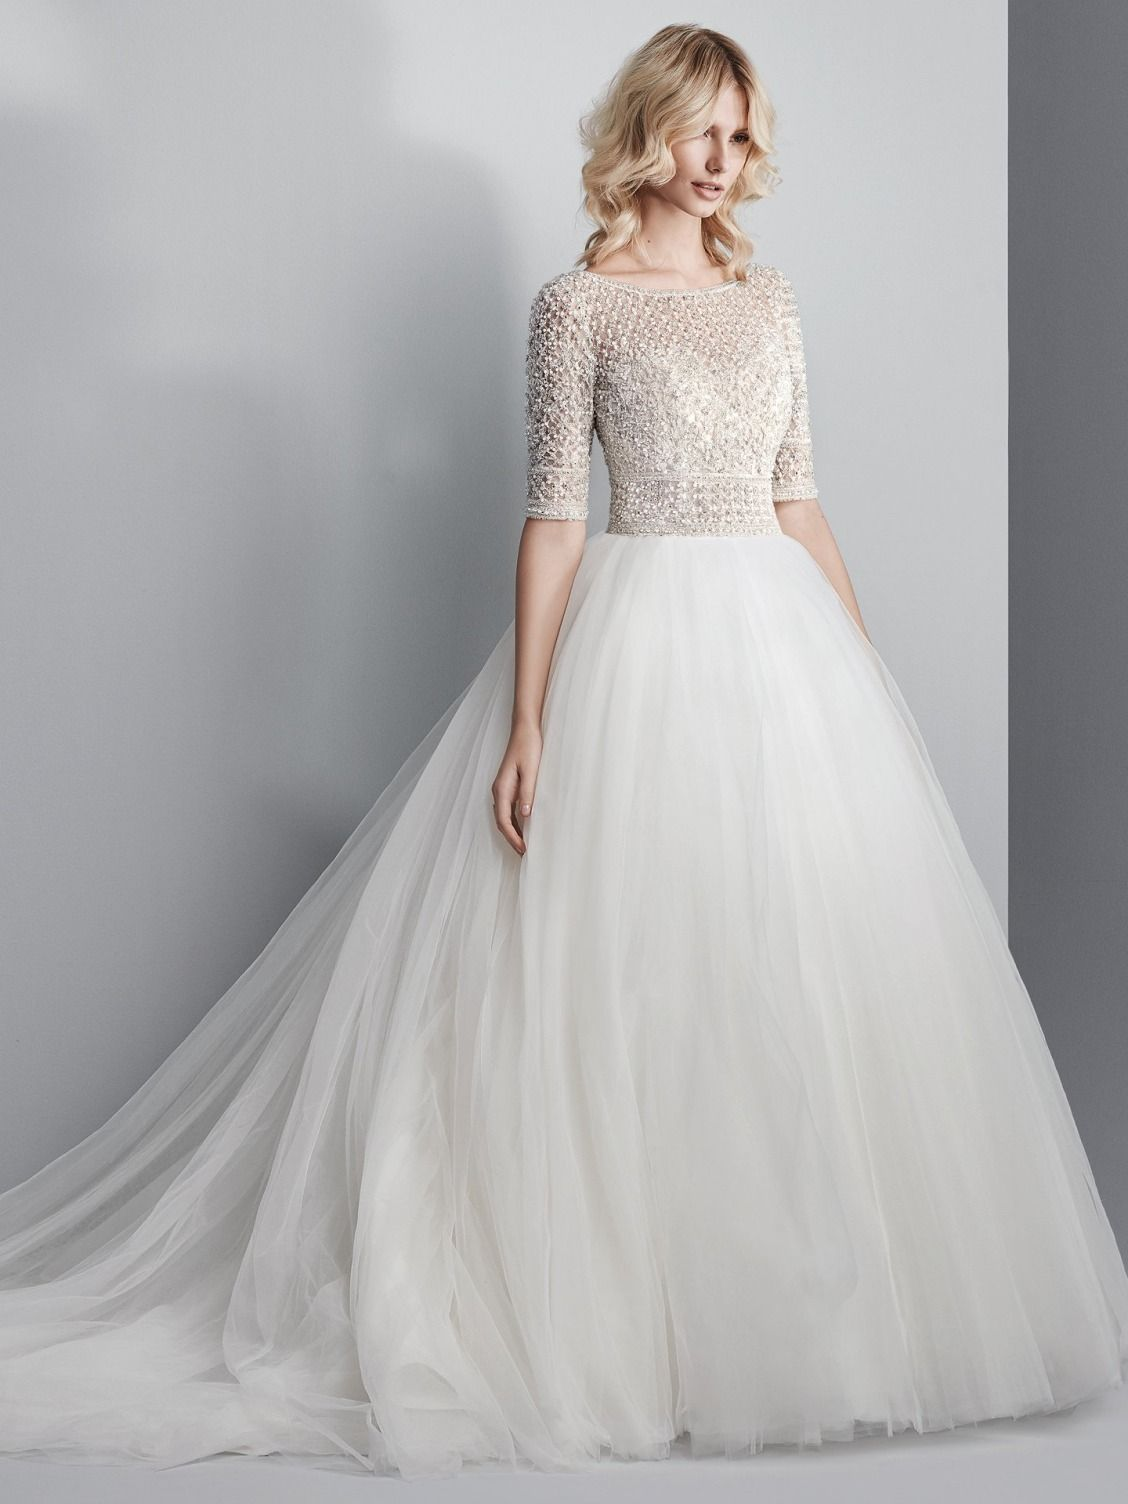 081d151c2fd ALLEN by Sottero and Midgley Wedding Dresses in 2019